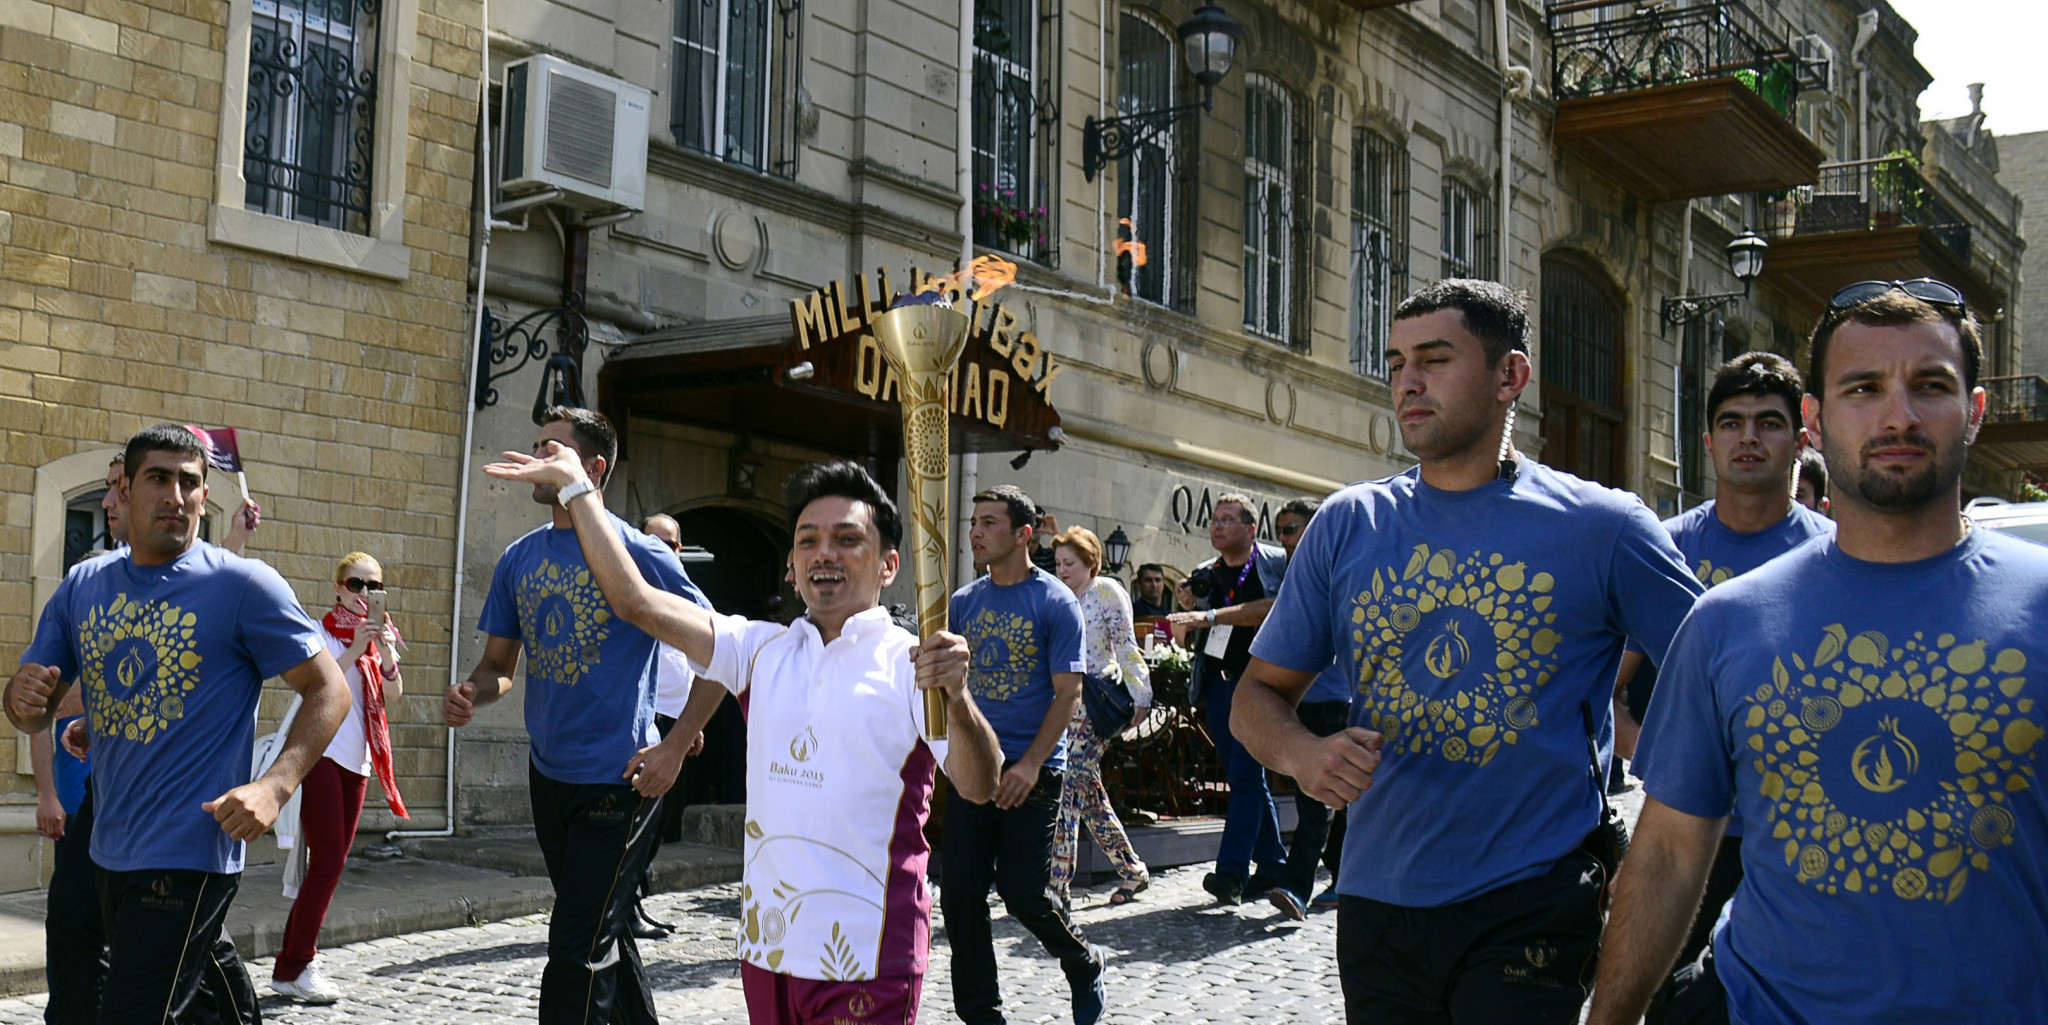 Minsk 2019 will follow Baku 2015 in holding a Torch Relay for the European Games ©Getty Images